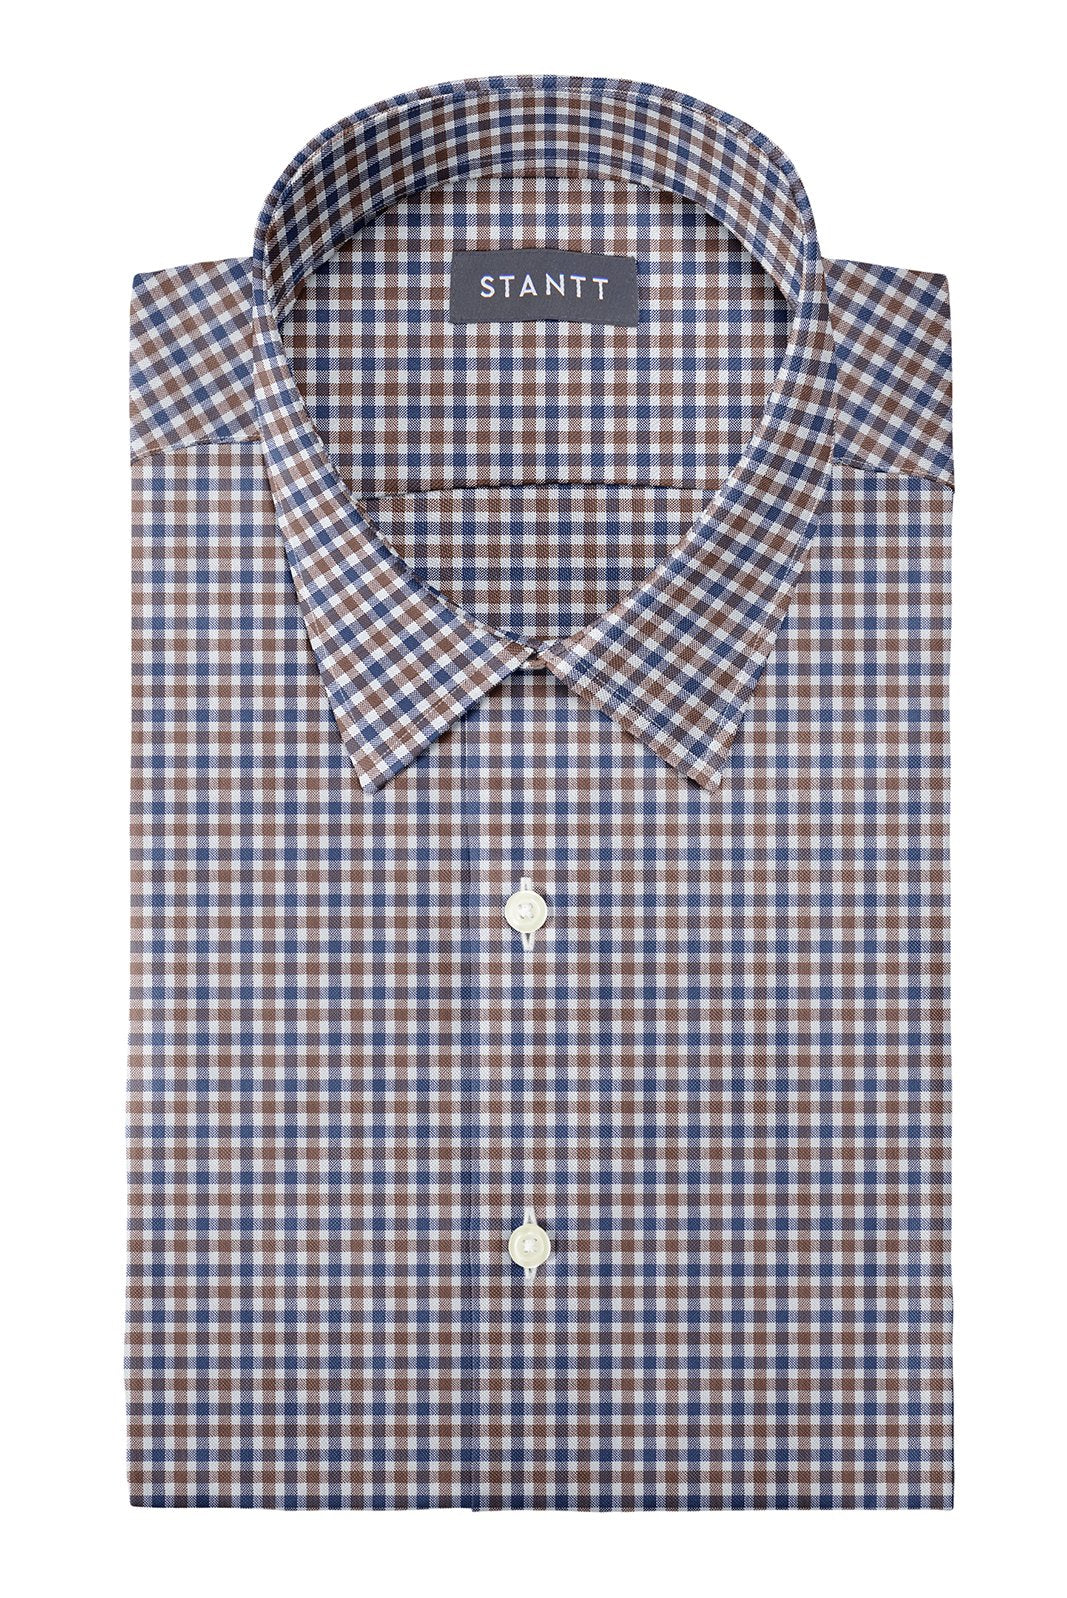 Brown and Navy Club Check Oxford: Semi-Spread Collar, French Cuff